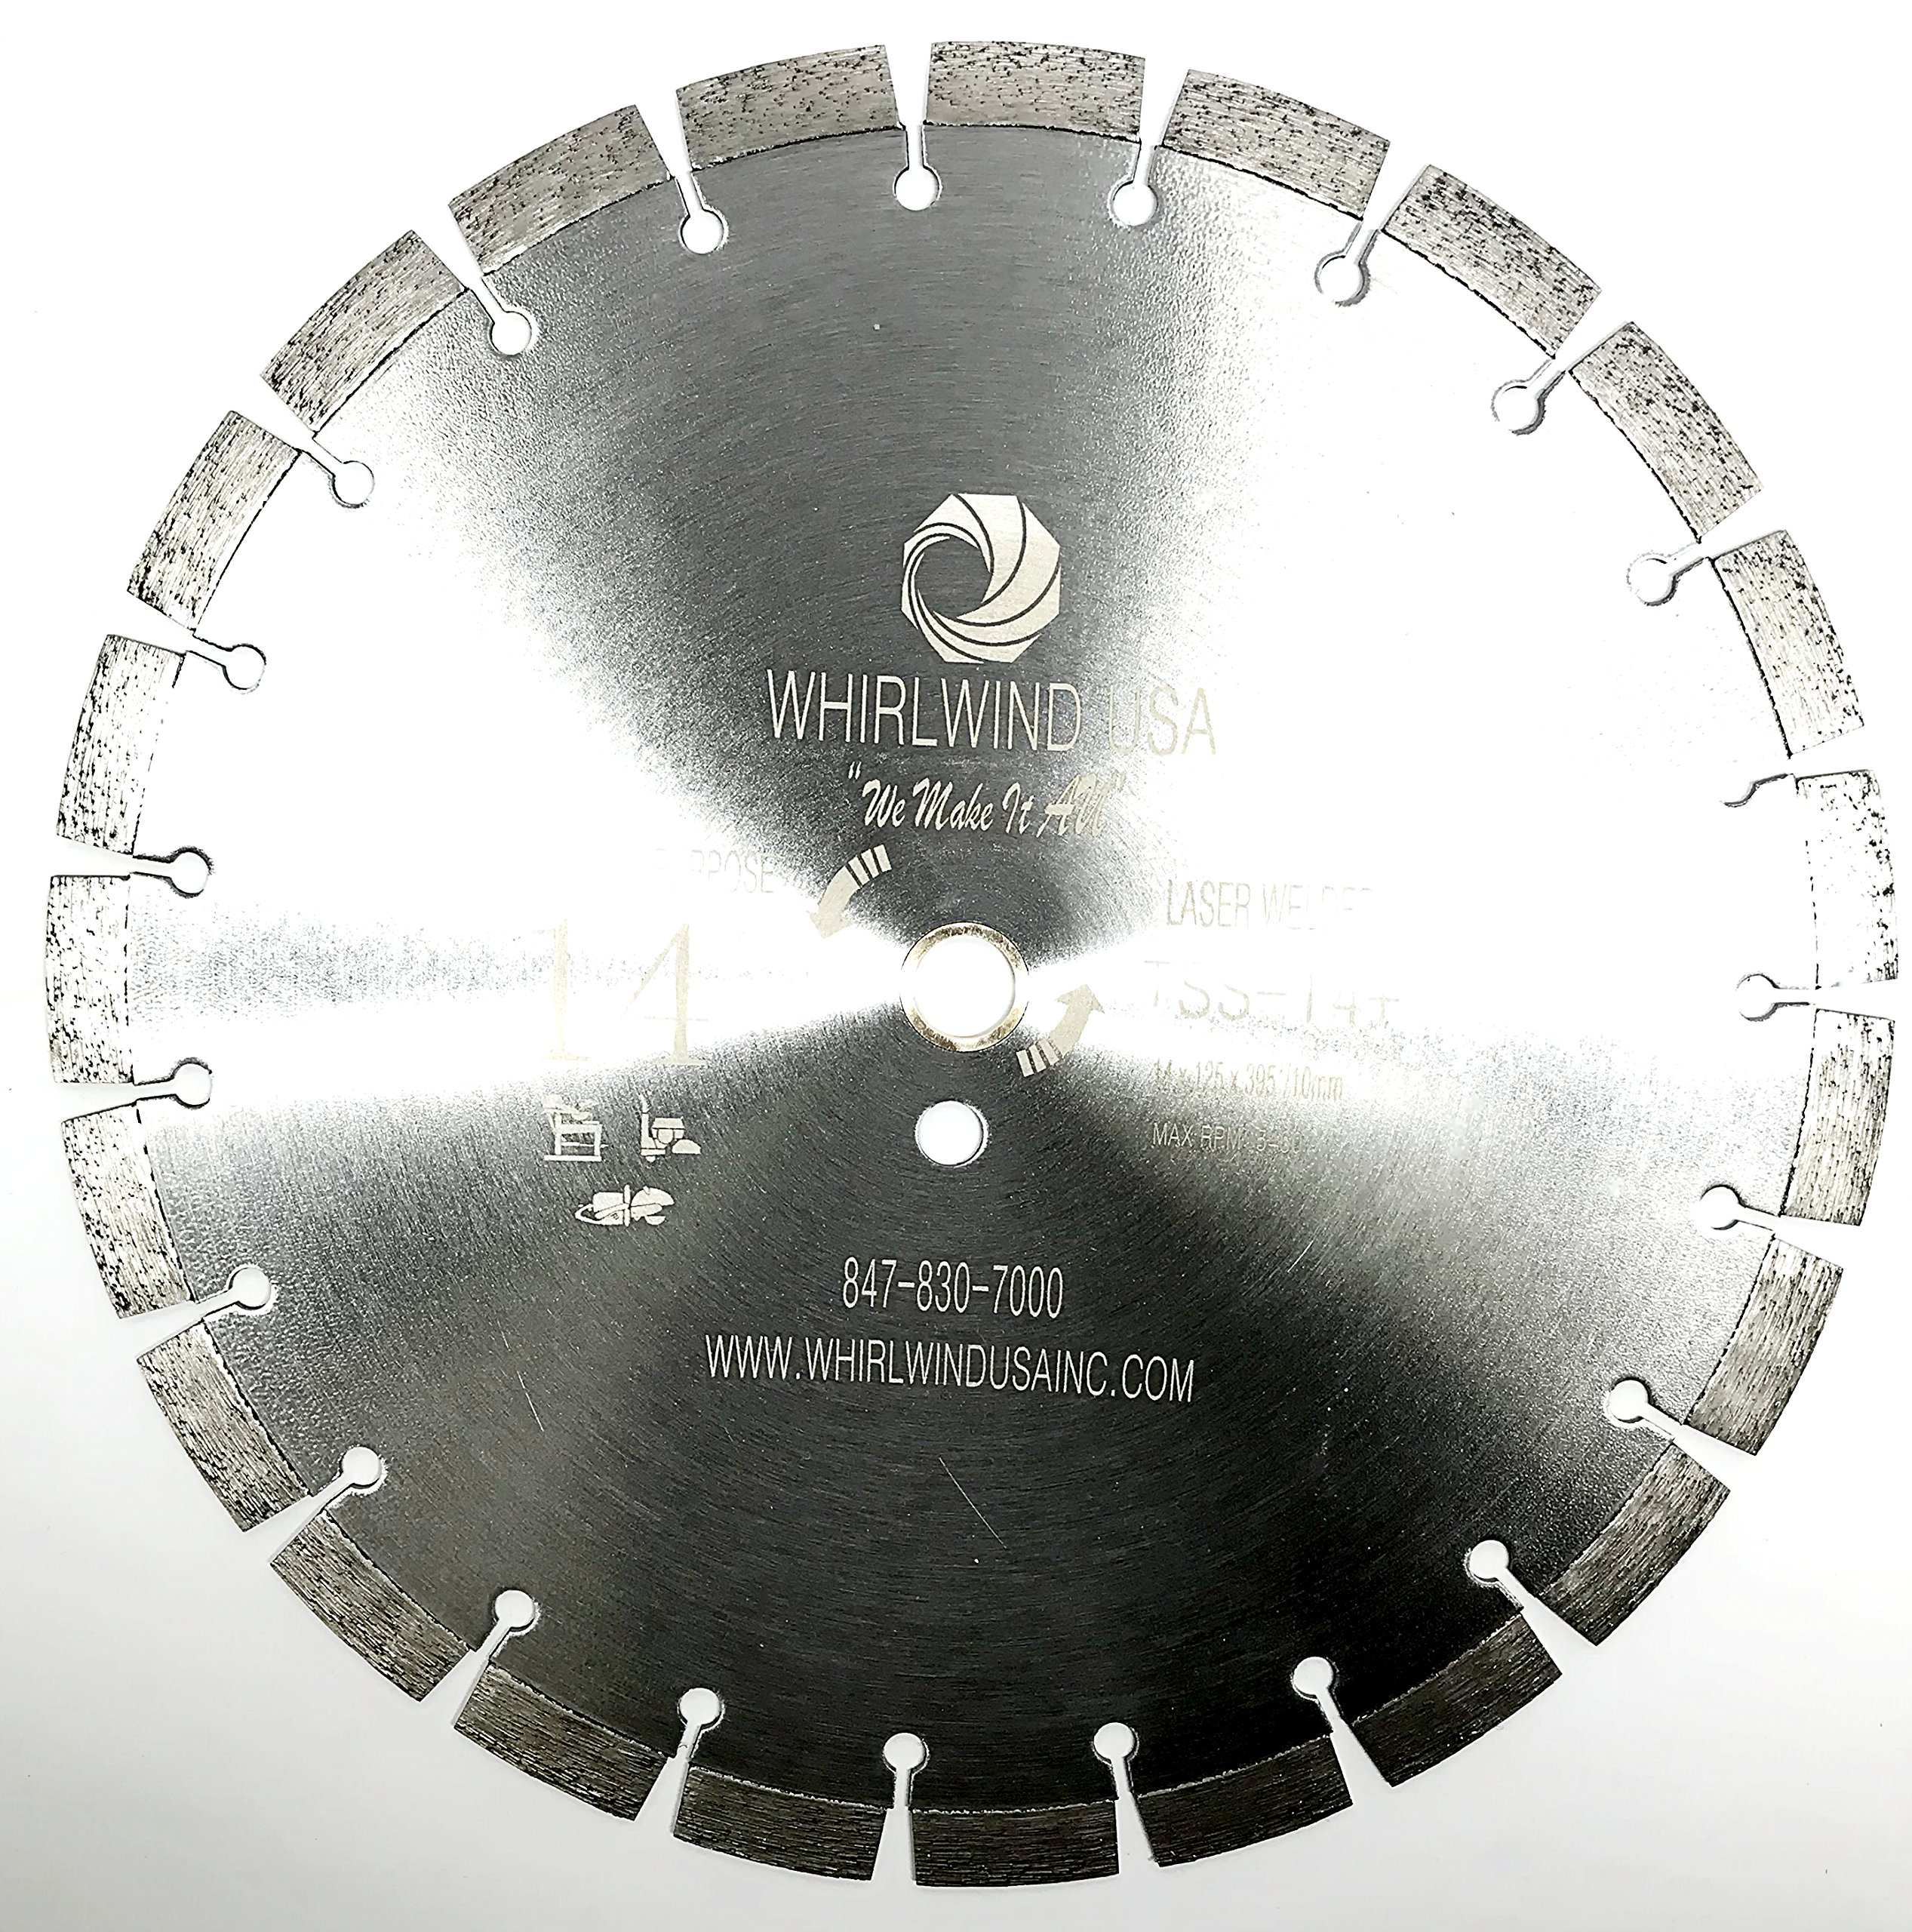 Whirlwind USA TSS 14 inch 15mm segment Laser Welded Dry or Wet Cutting General Purpose Segmented Diamond Saw Blades Cutting Concrete and Masonry (14'' 15mm seg)